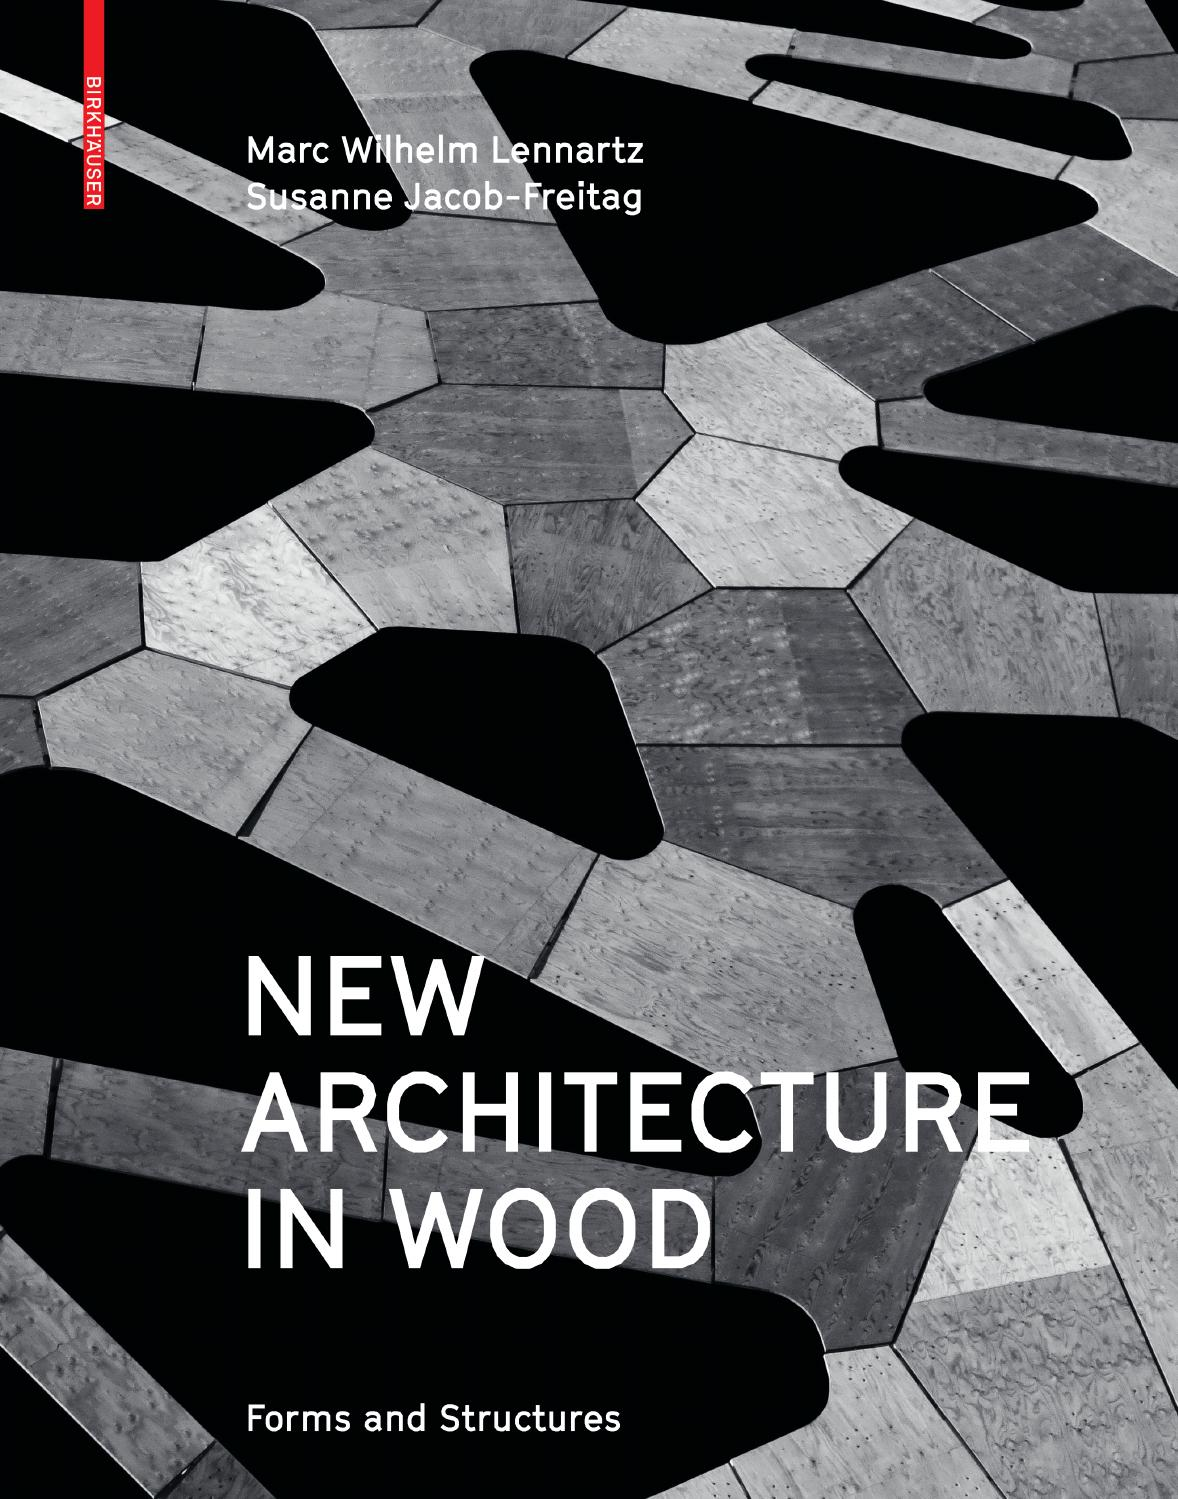 New Architecture In Wood: Forms and Structures Book Cover